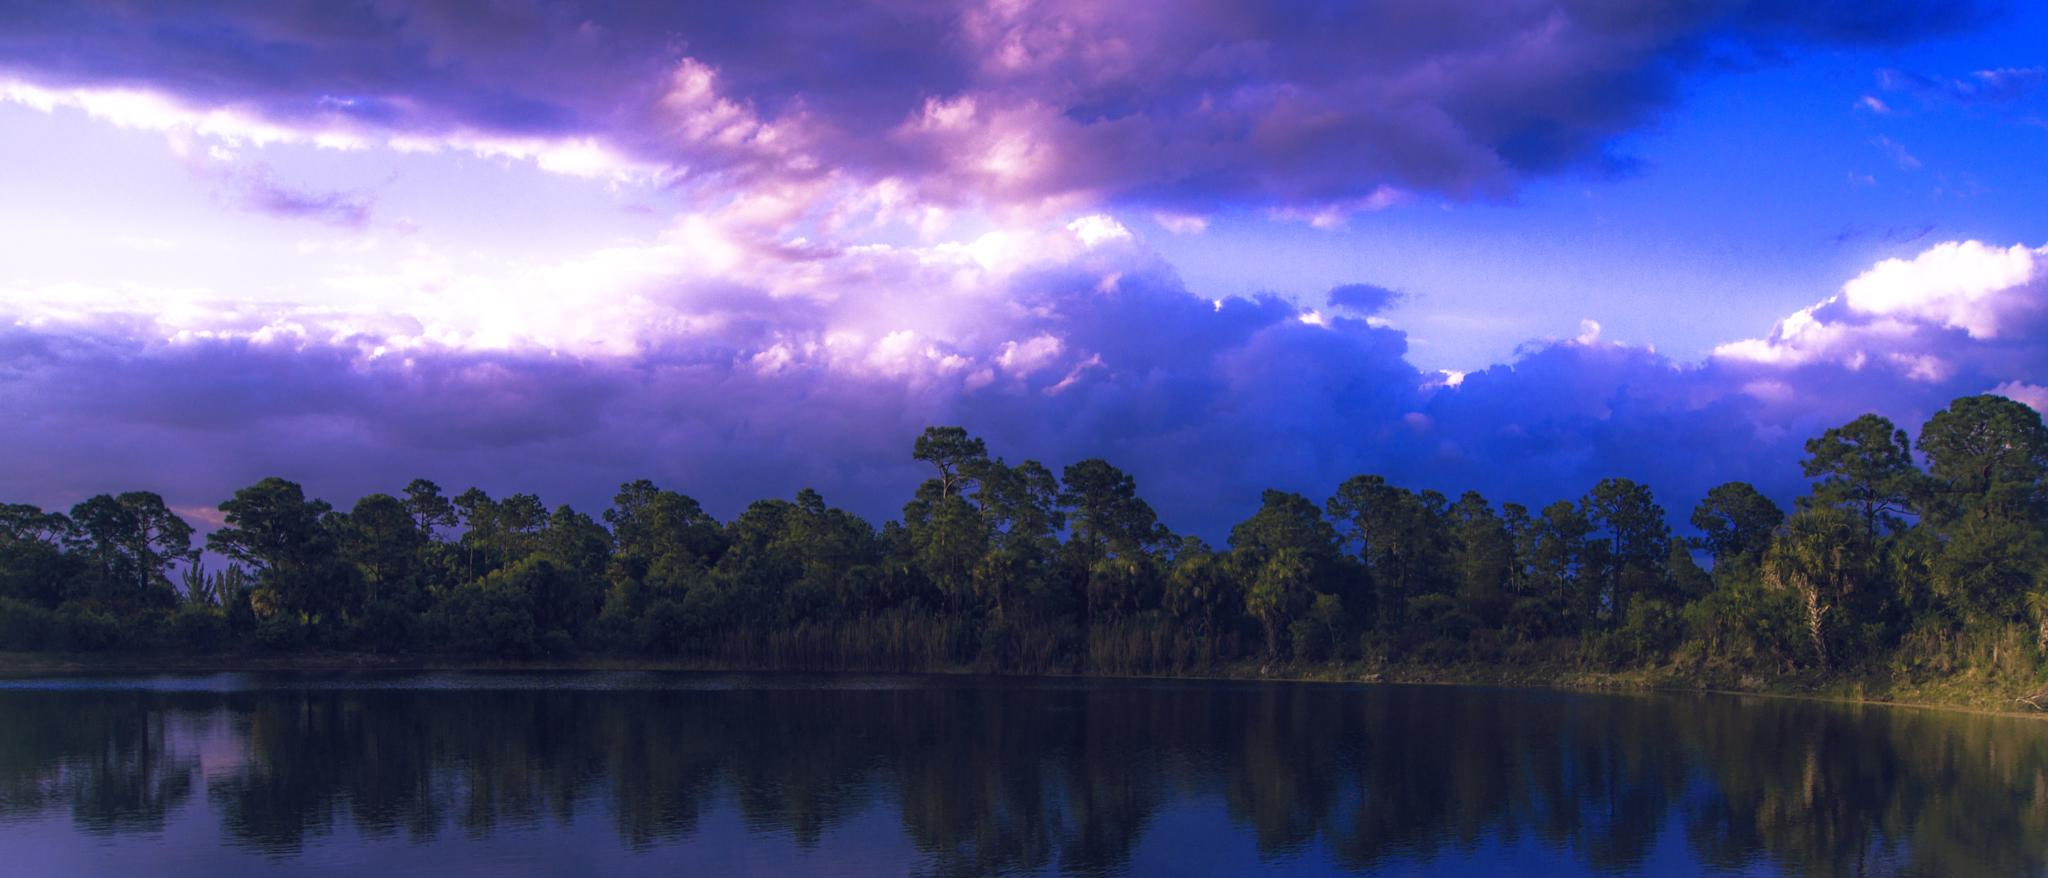 Florida Outdoors by Michael C Frizzell